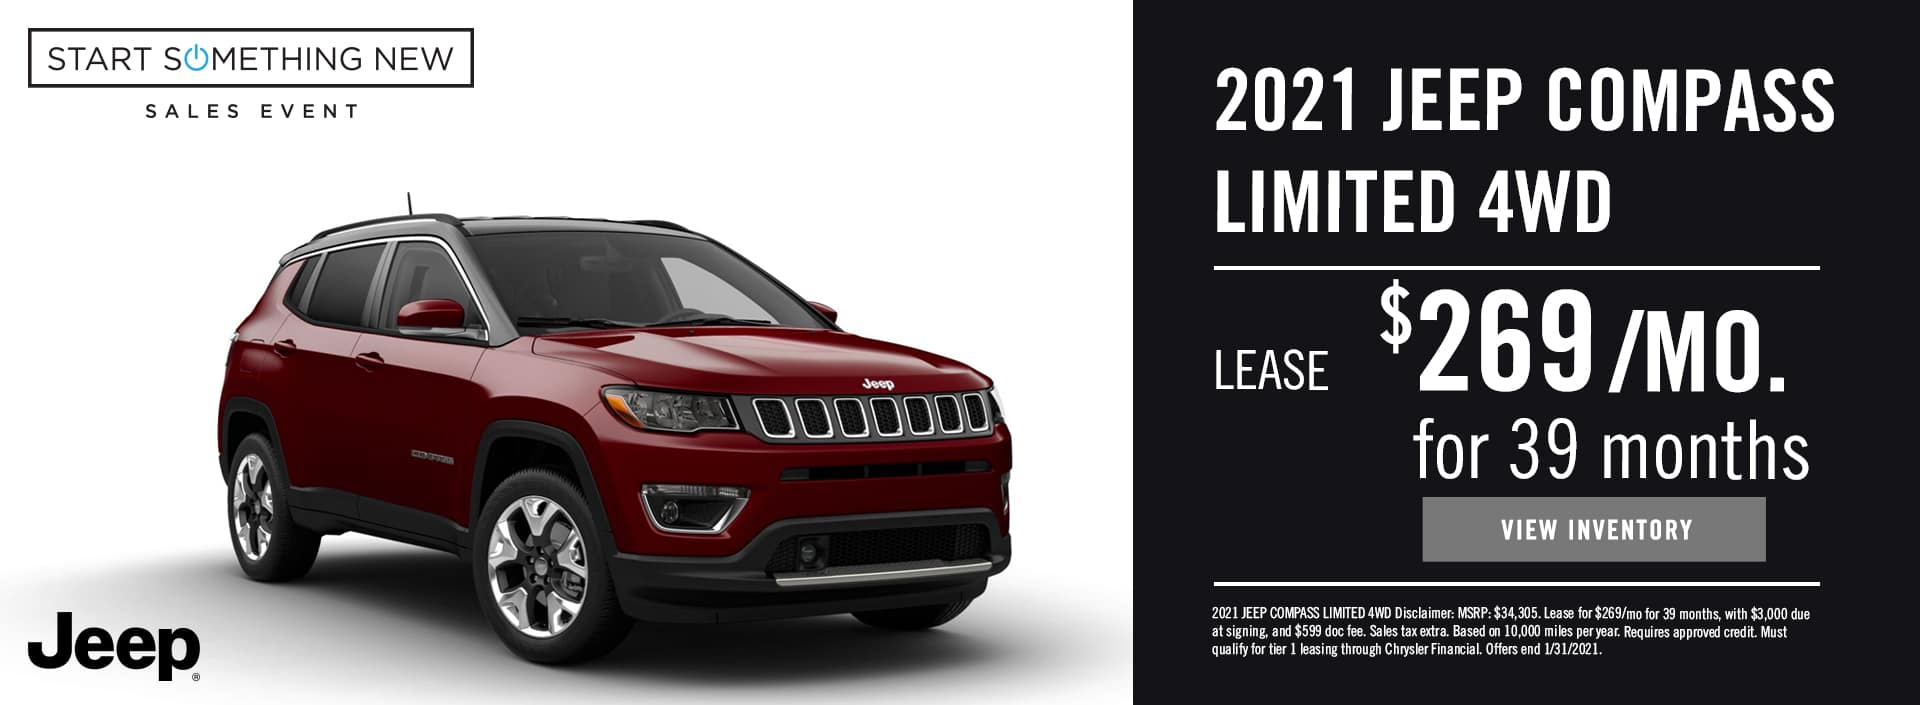 EAG_DJR_2021 JEEP COMPASS LIMITED 4WD